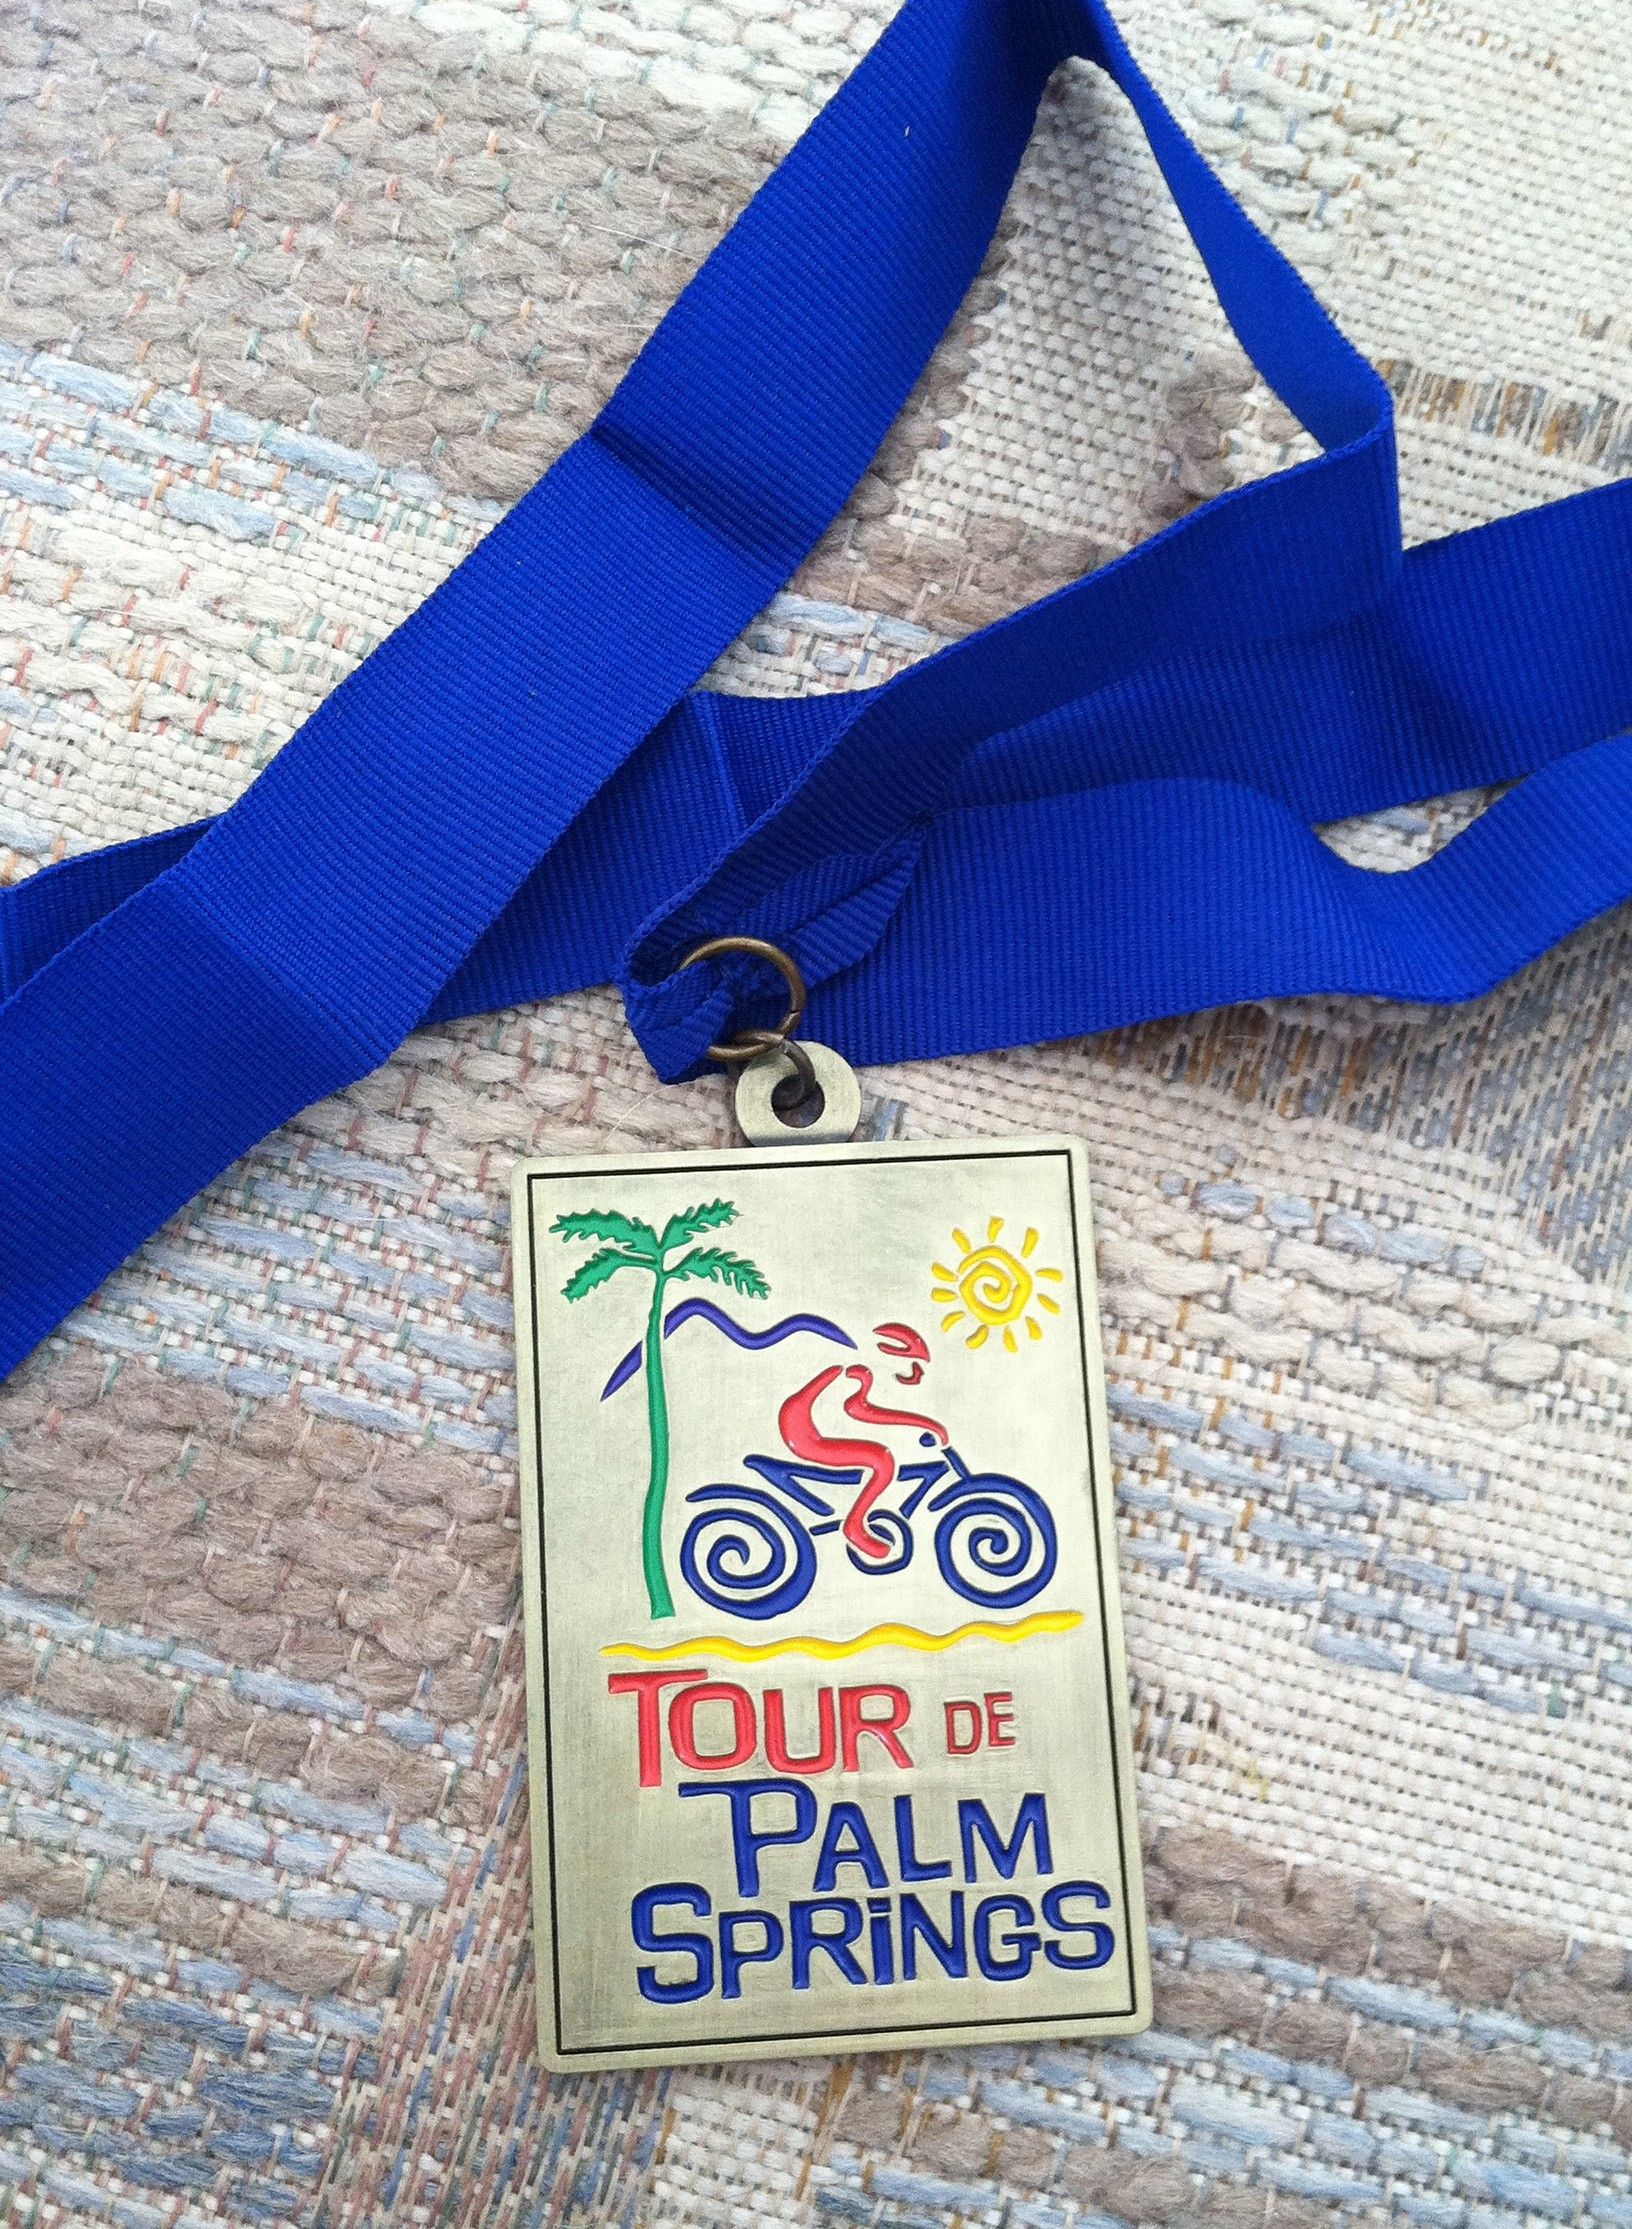 Tour de Palm Springs Medal 2008 (in 2012)